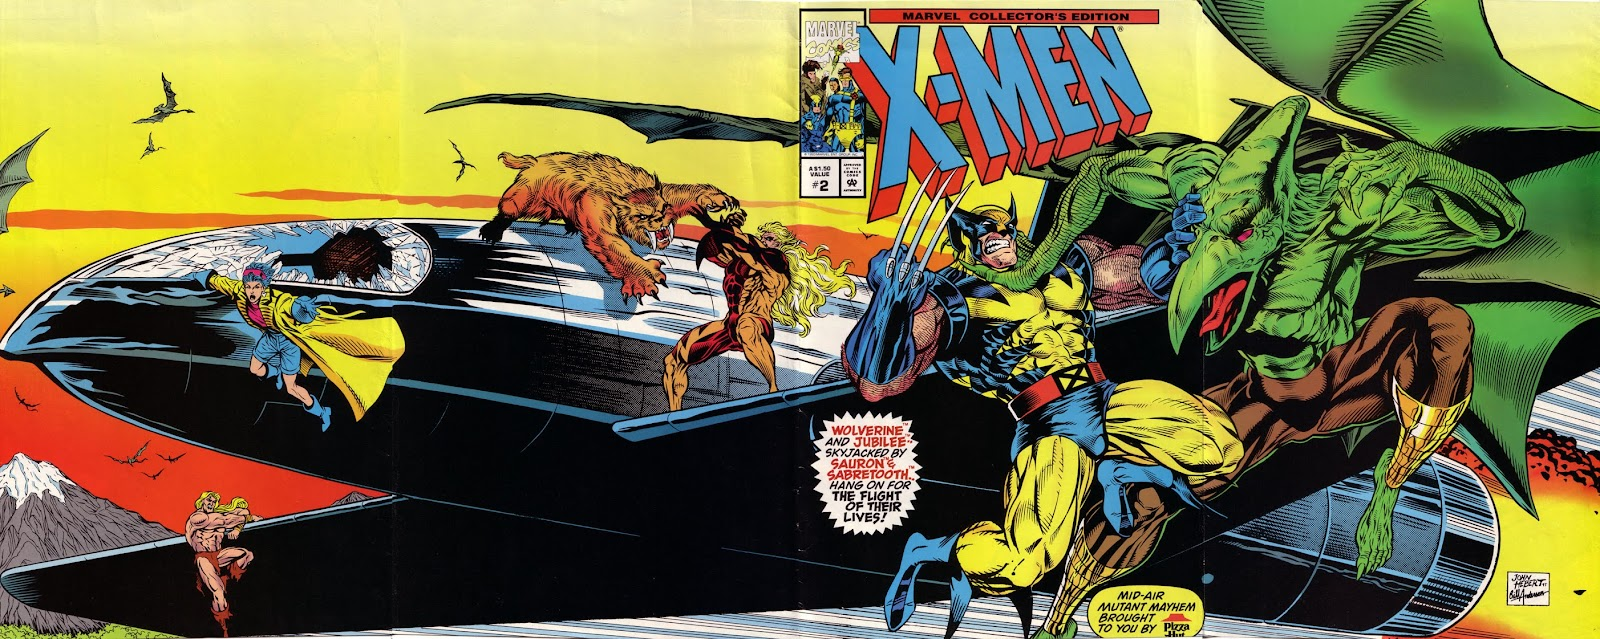 The X-Men Collectors Edition 2 Page 1